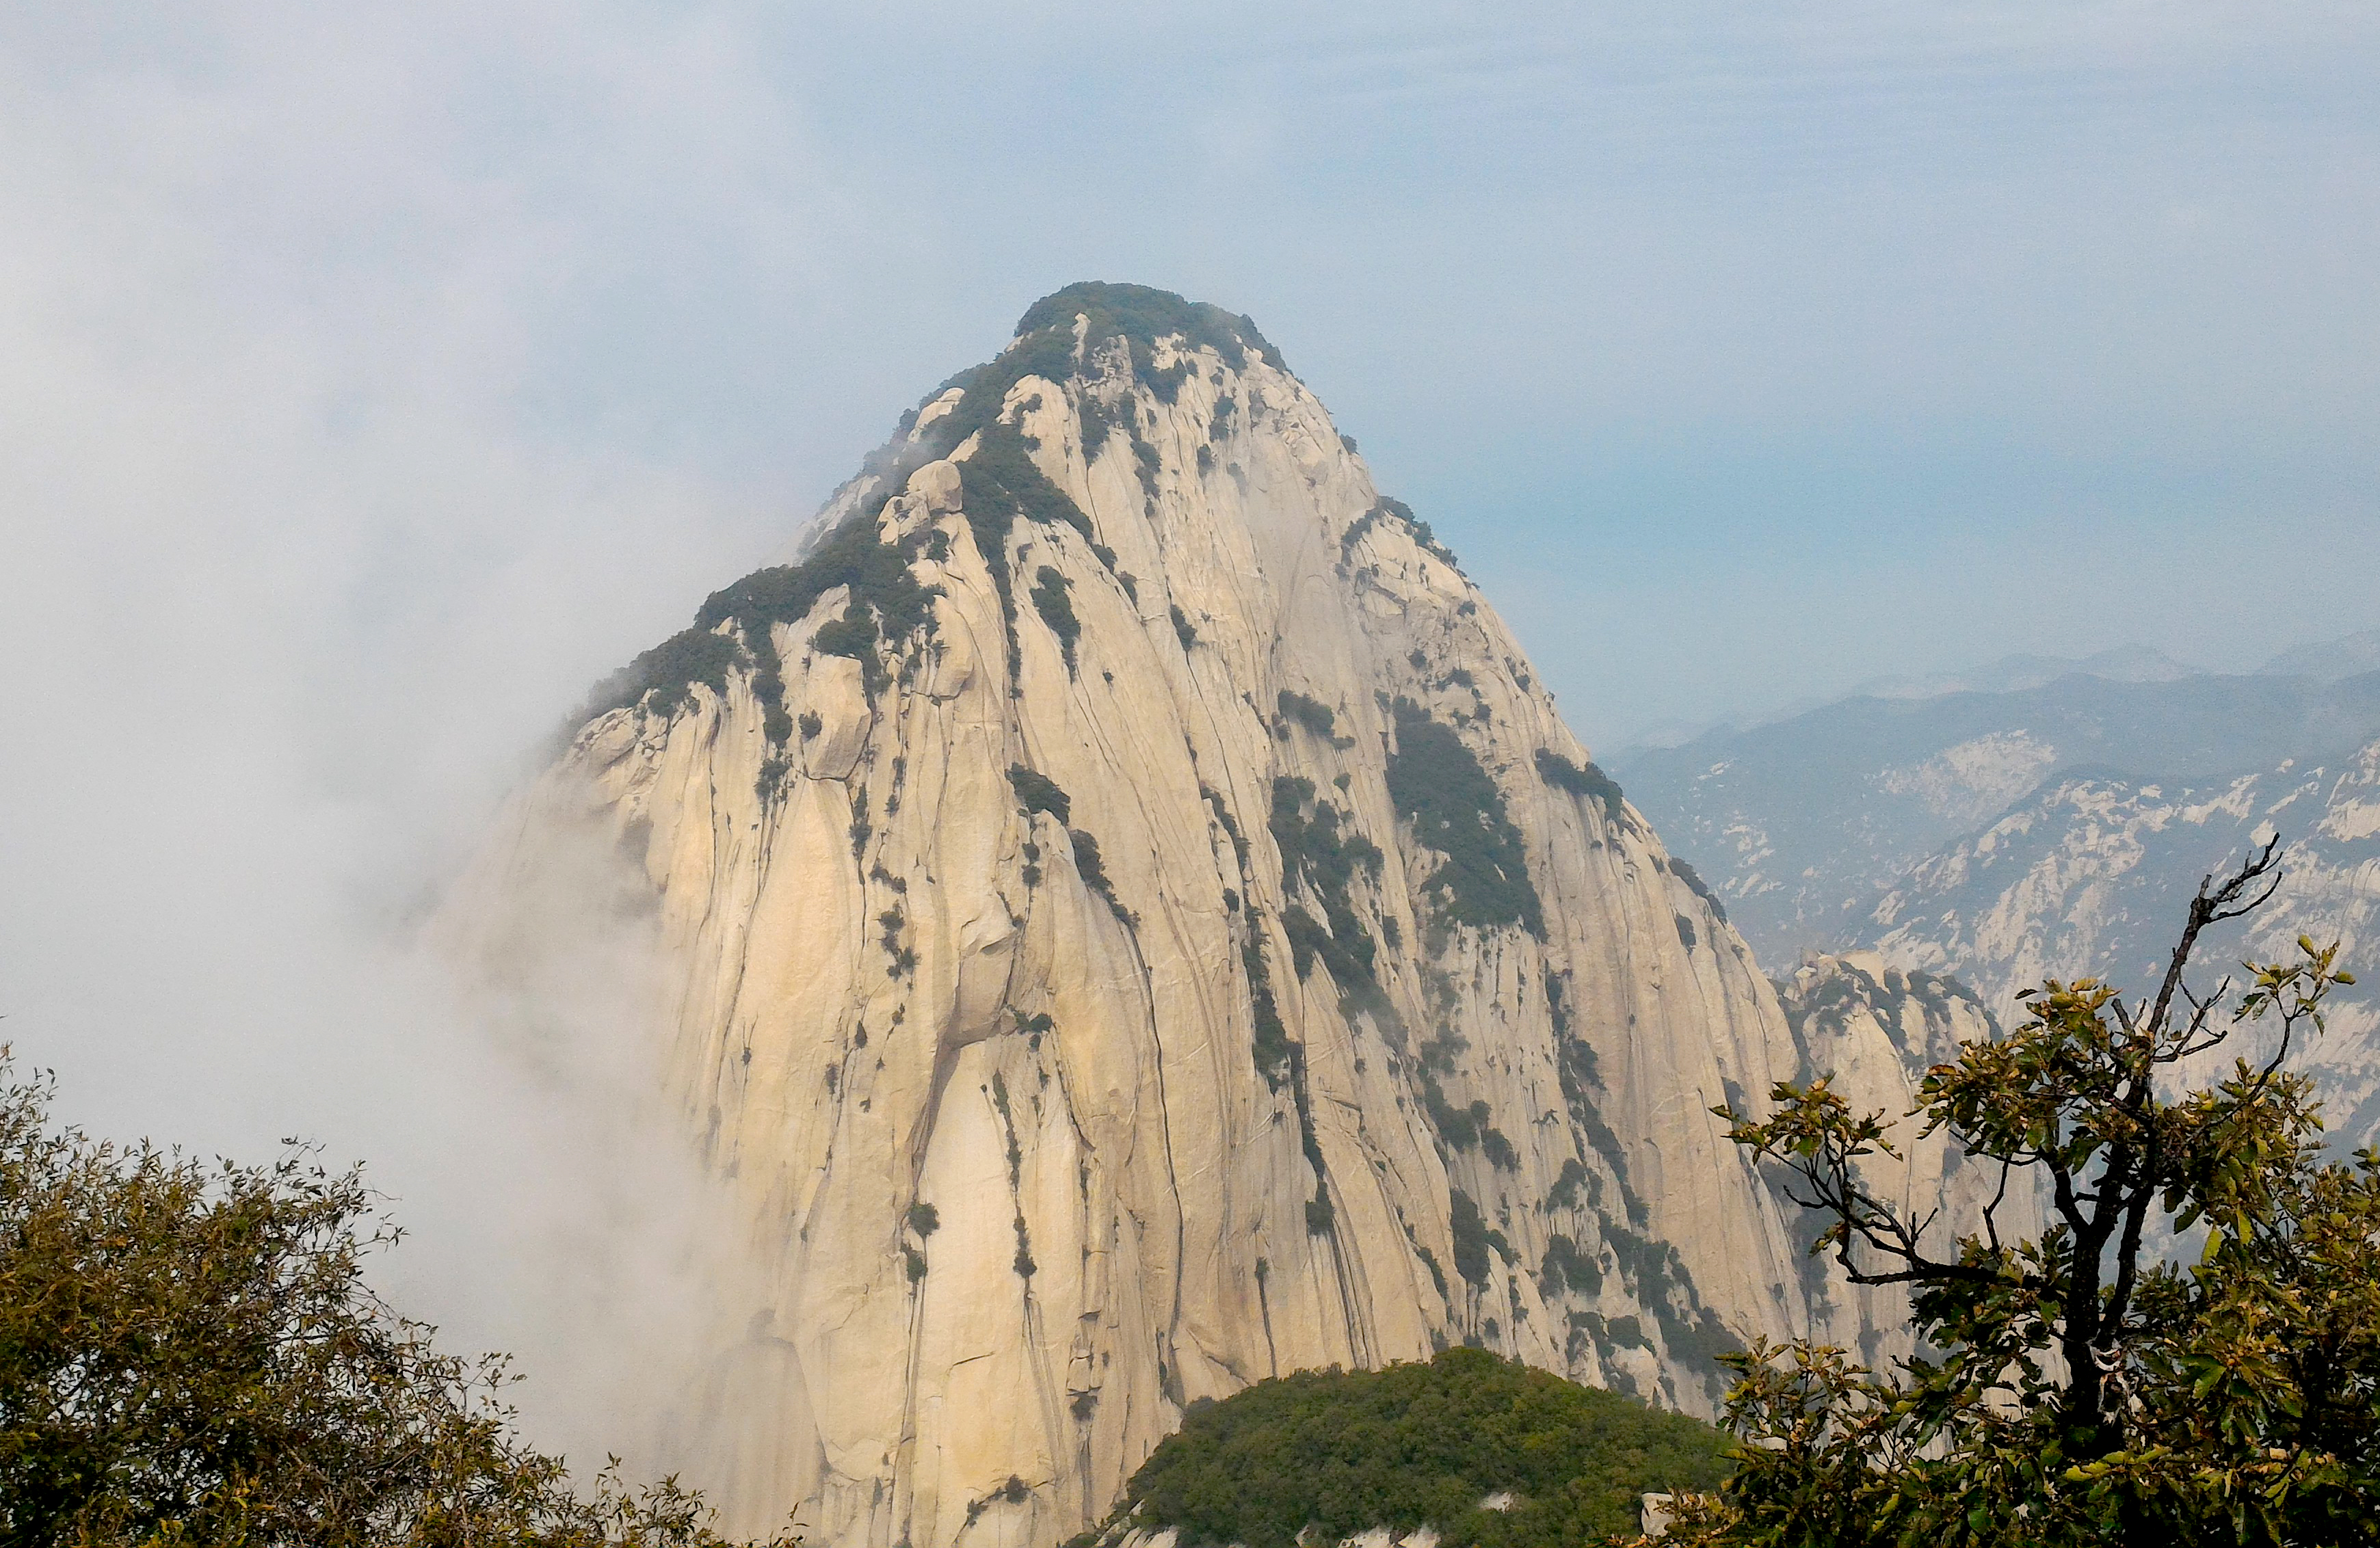 THE PRECIPITOUS MOUNTAIN UNDER HEAVEN. Mount Hua is famous for having steep cliffs and plunging ravines. Photo by Pauline Buenafe